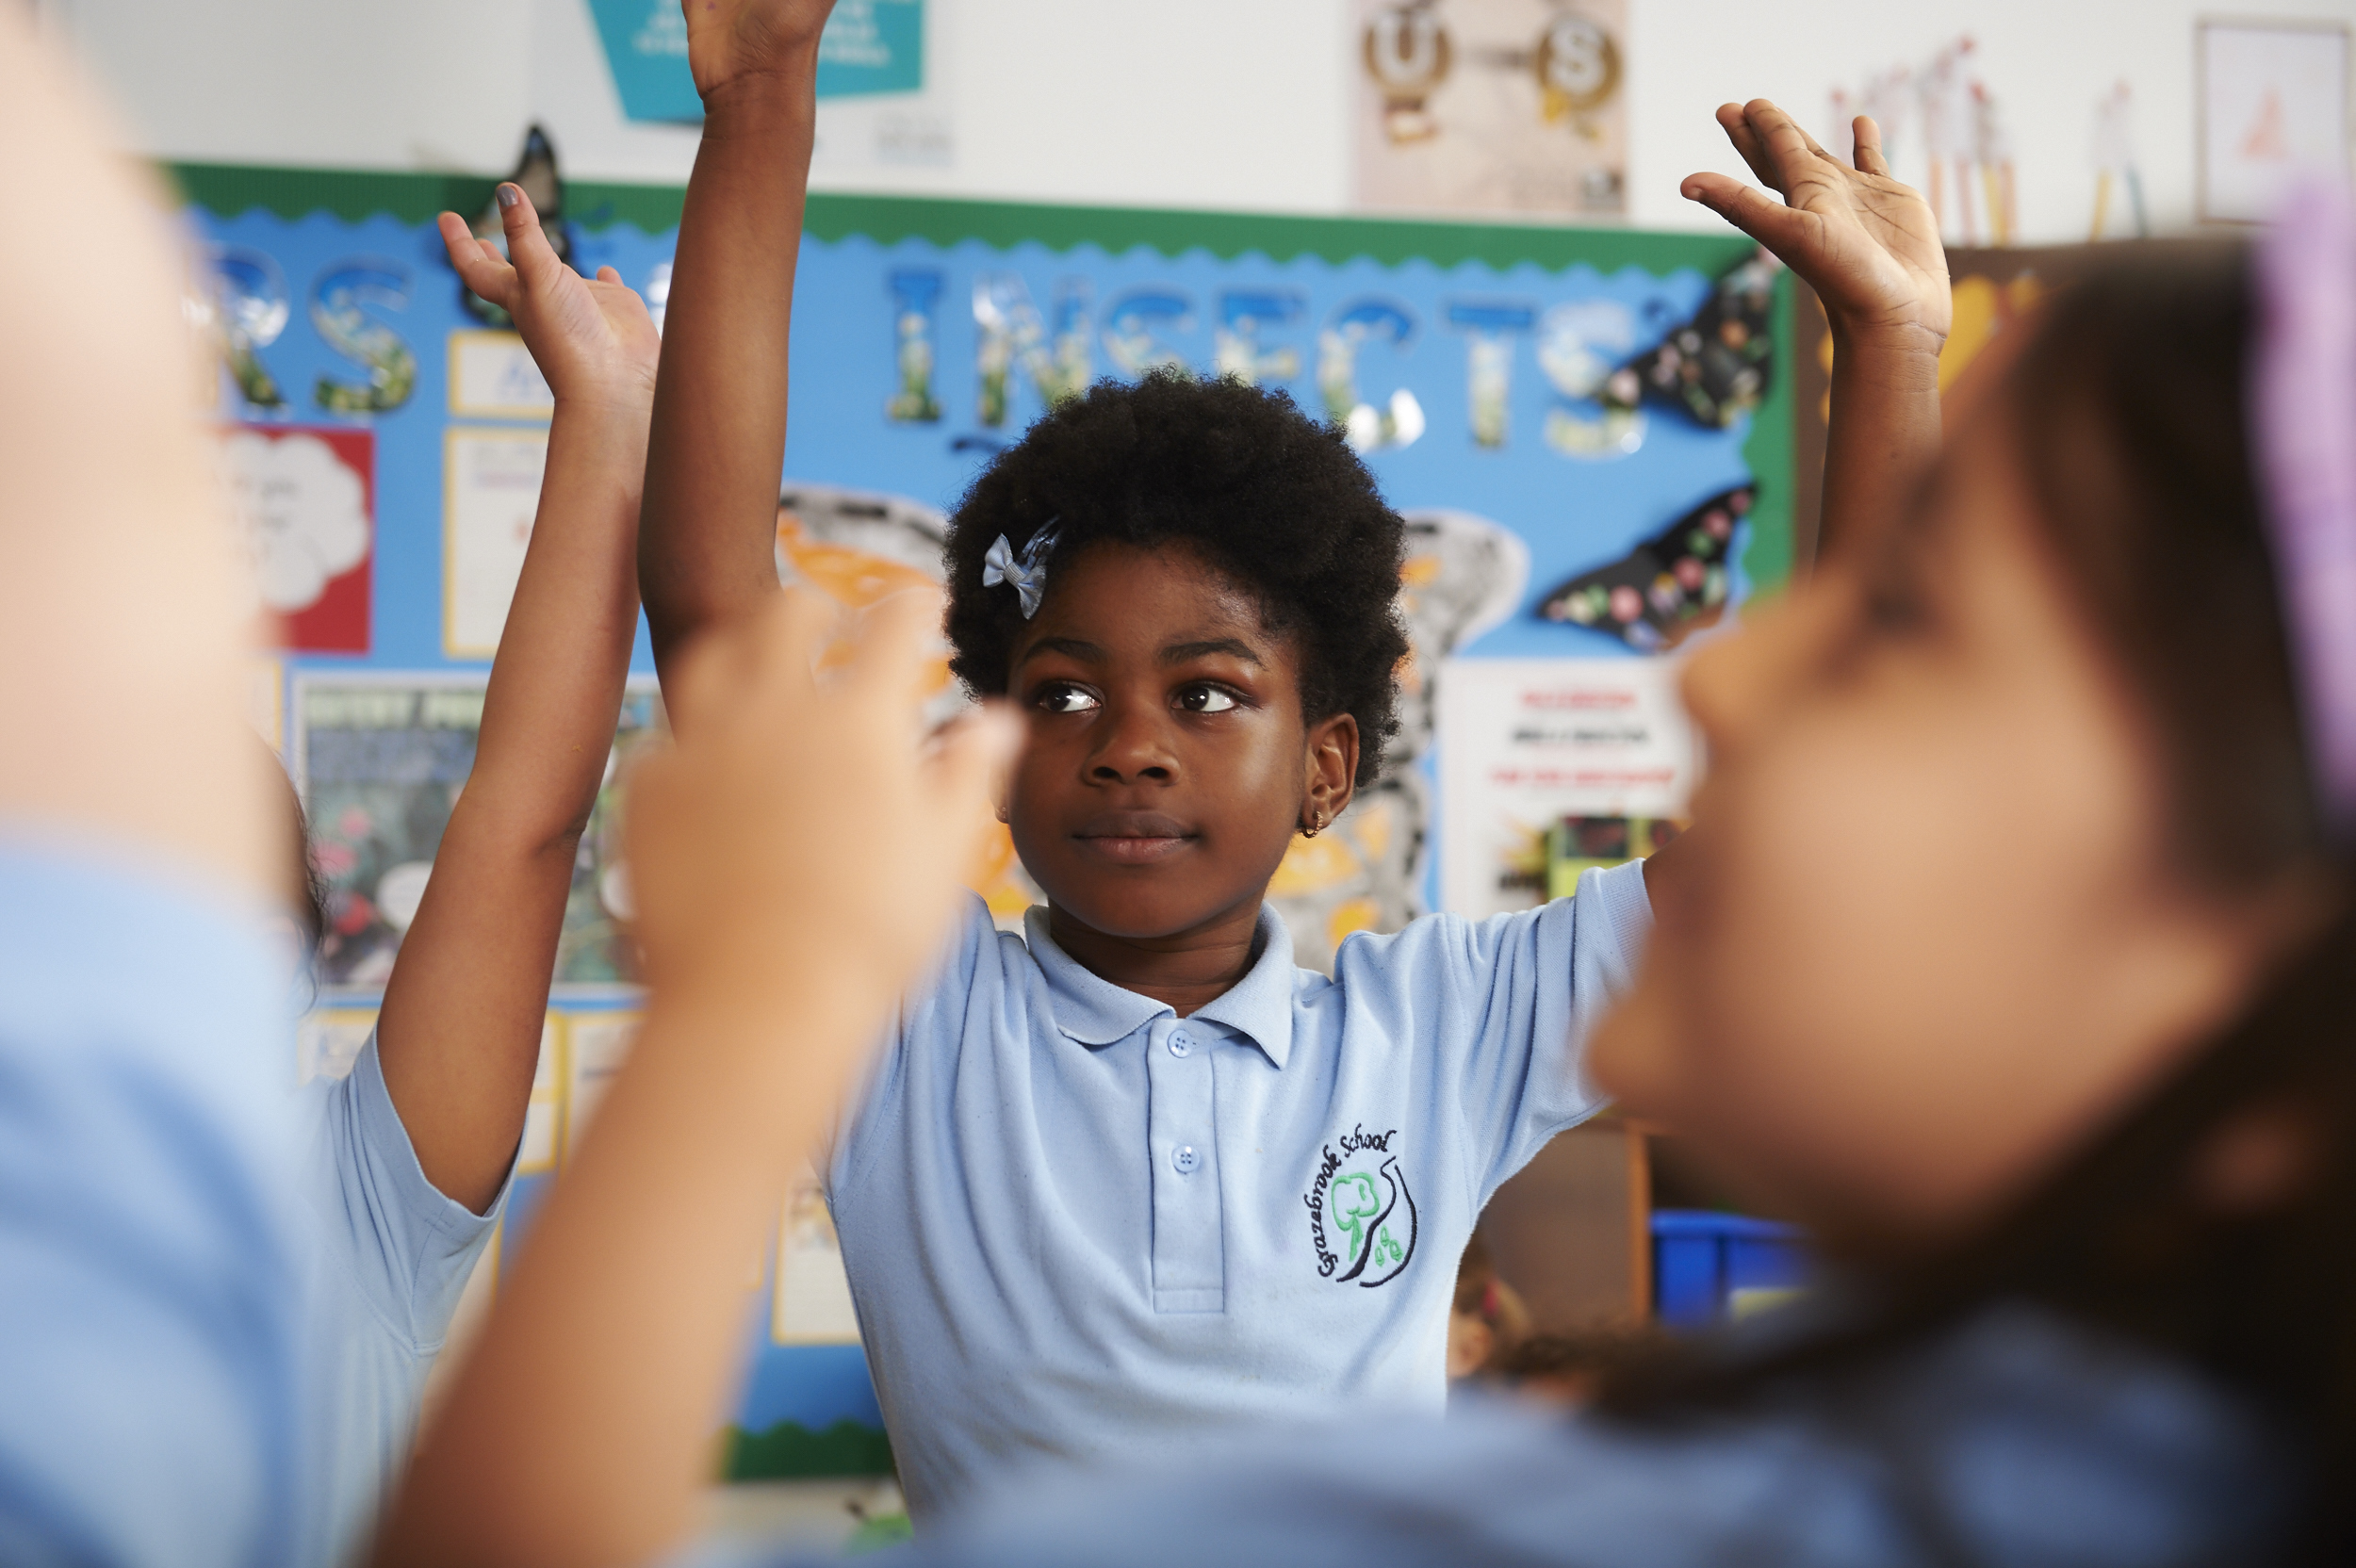 £41m funding boost for the mastery approach: great news for schools, but what does it mean for teachers?